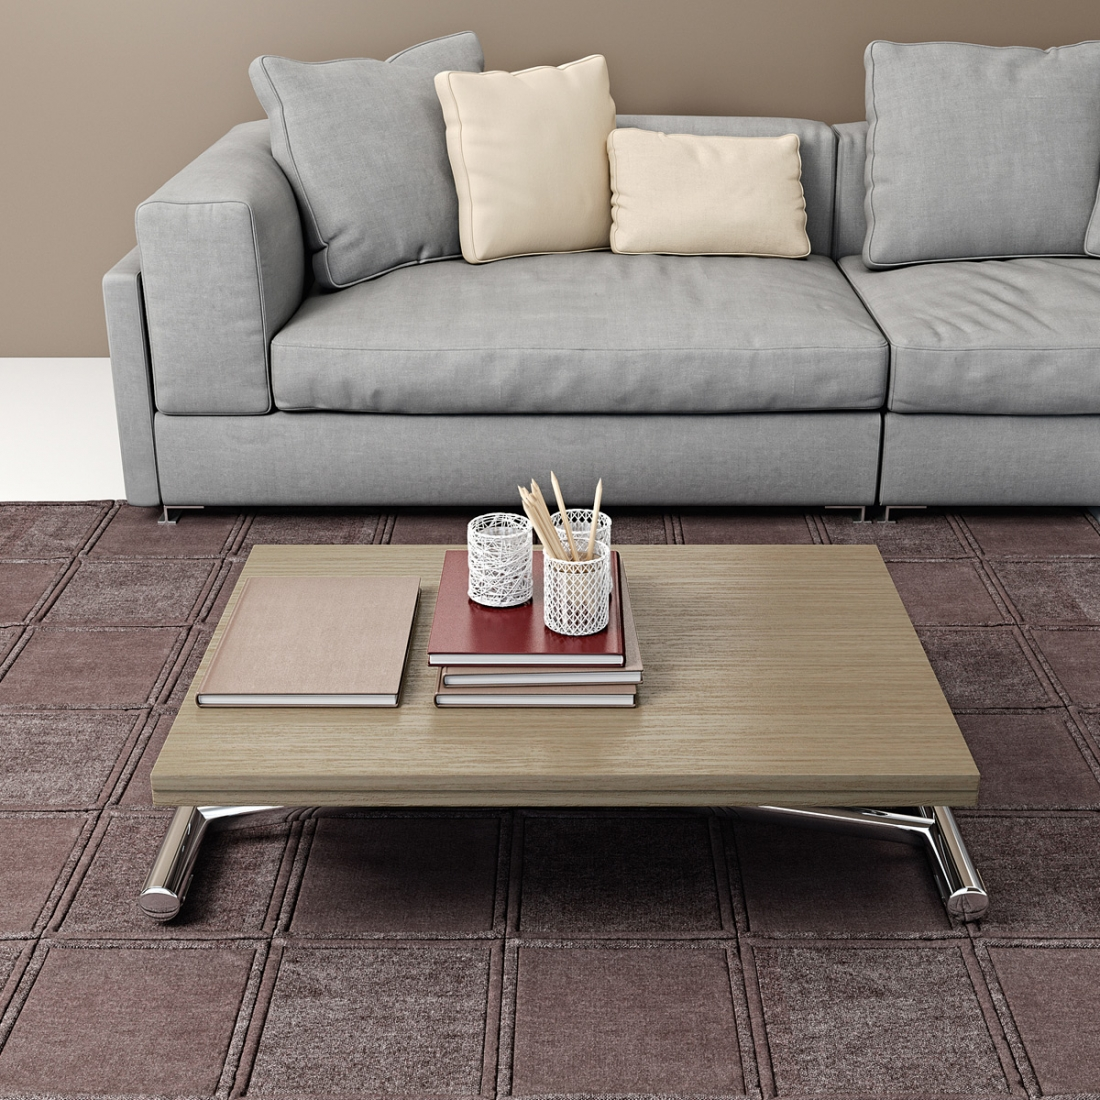 Table basse modulable design gingillo chrom for Table basse style mexicain